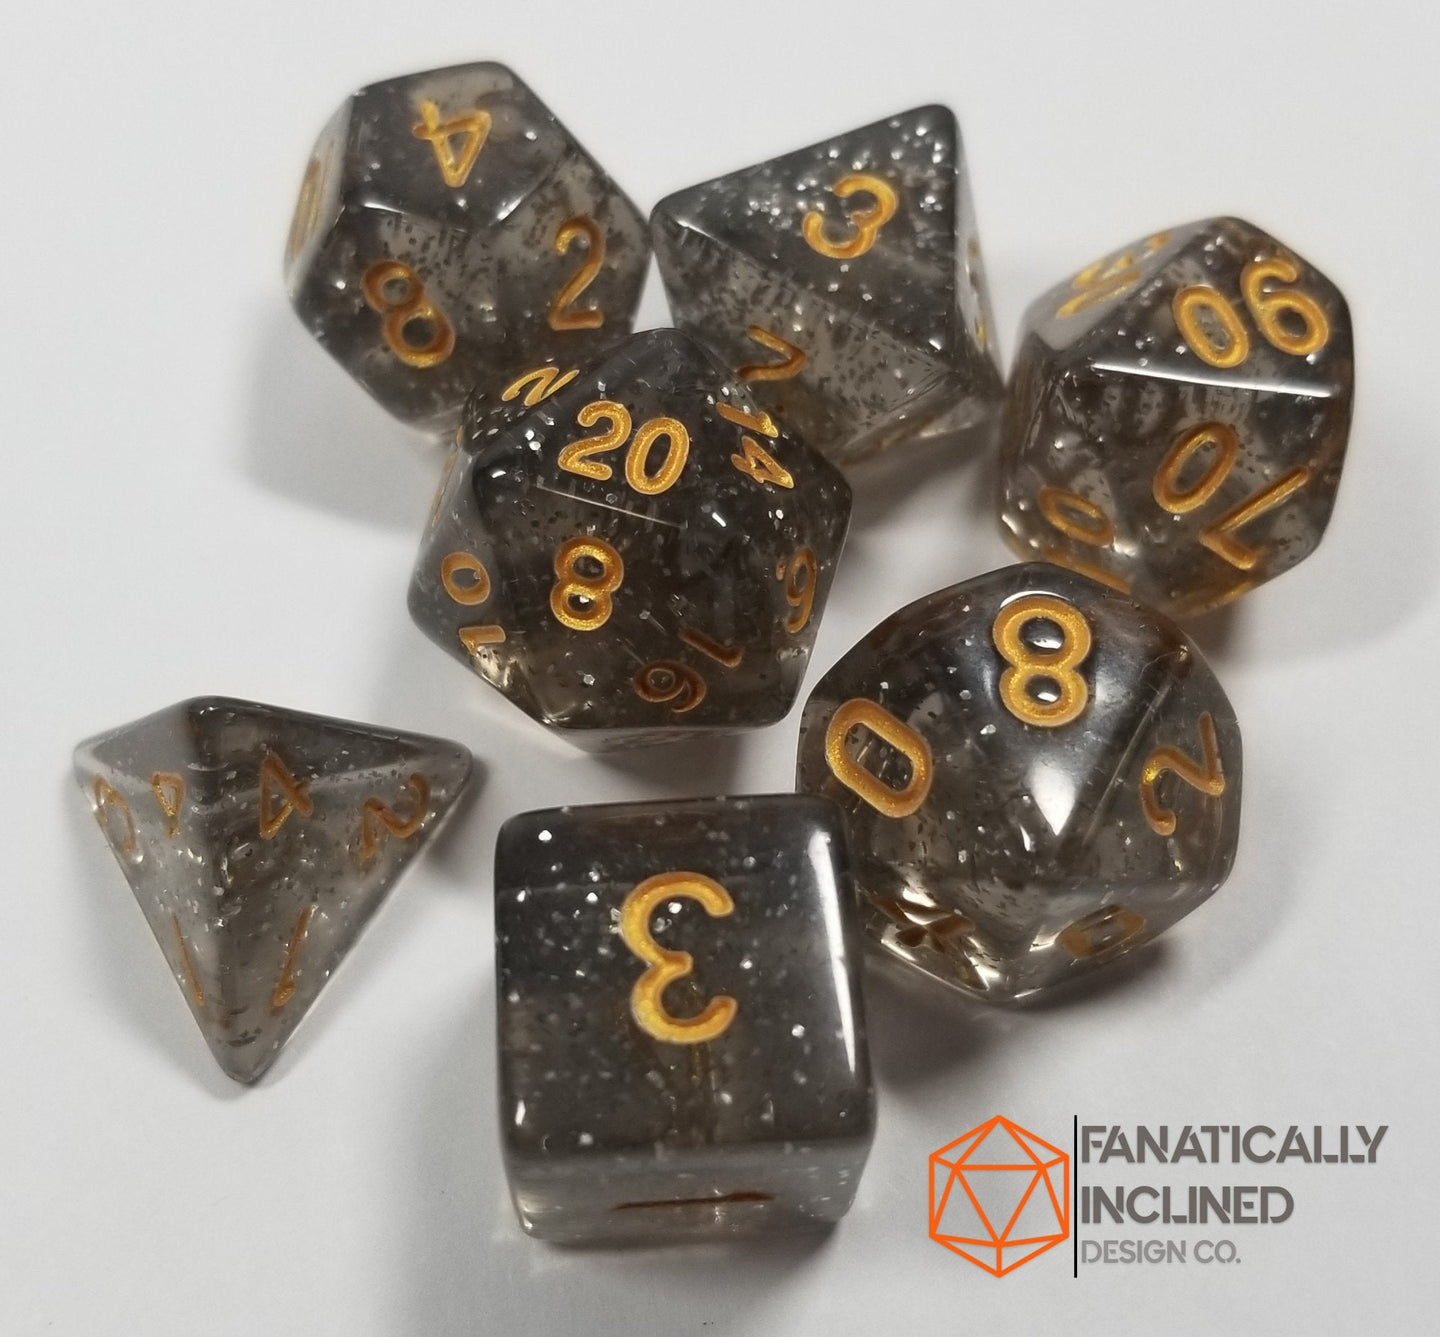 Smoke and Gold Glitter 7pc Dice Set